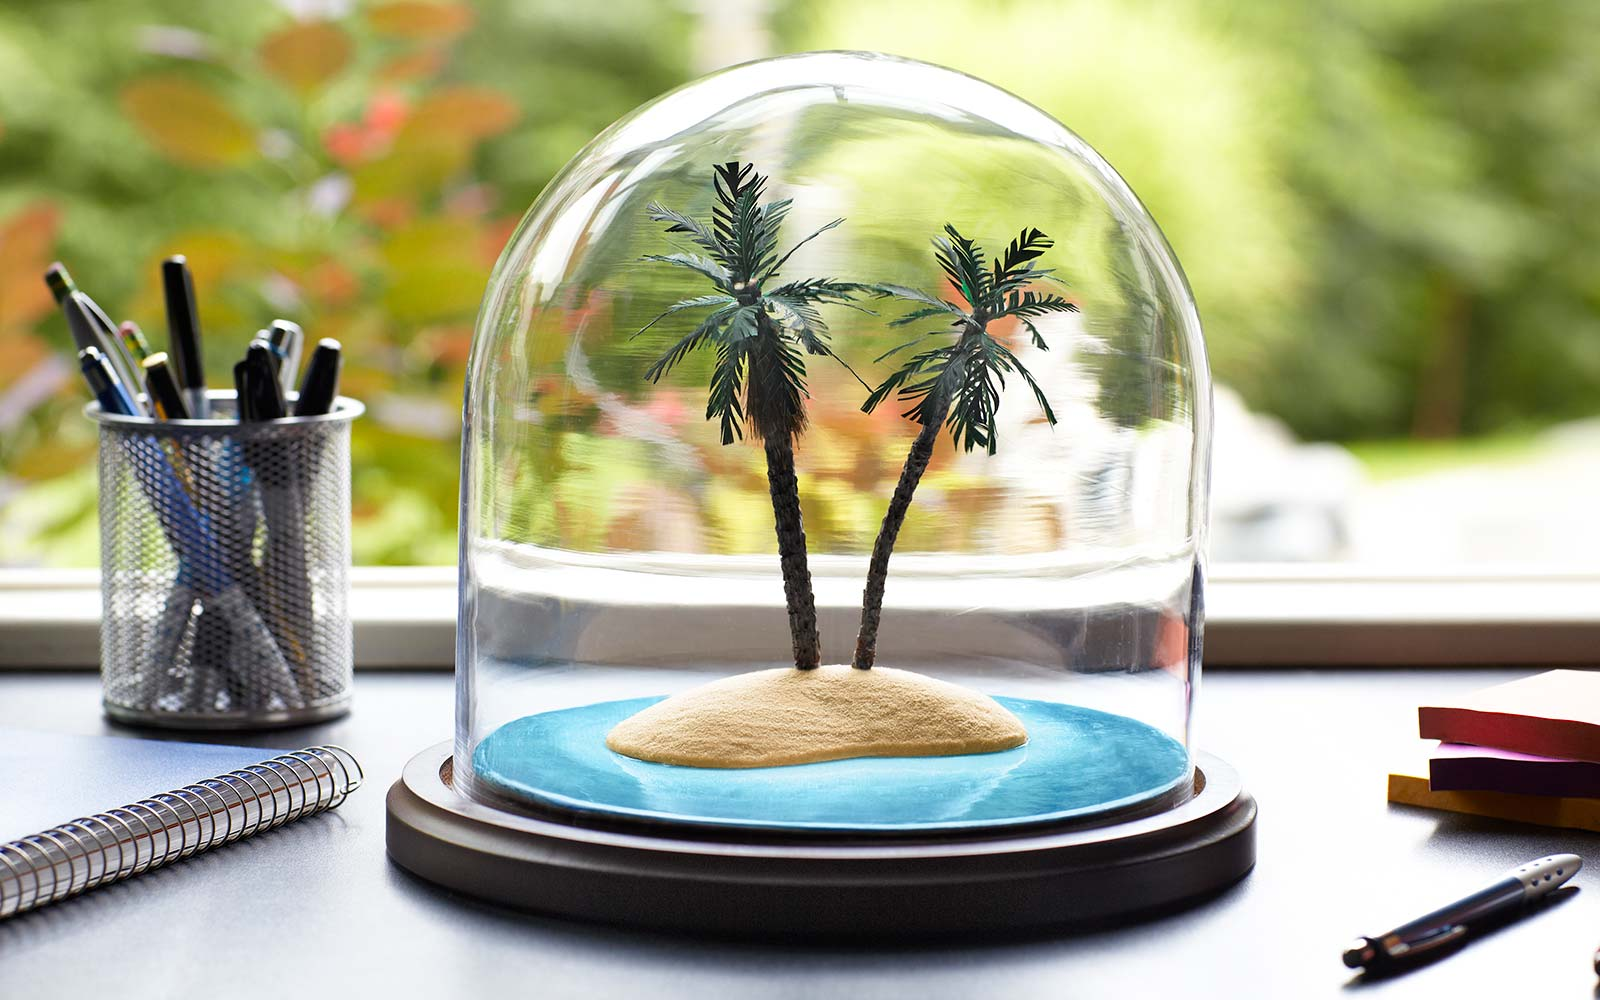 Office Desk Post Vacation Blues Depression Tropical Palm Tree decoration